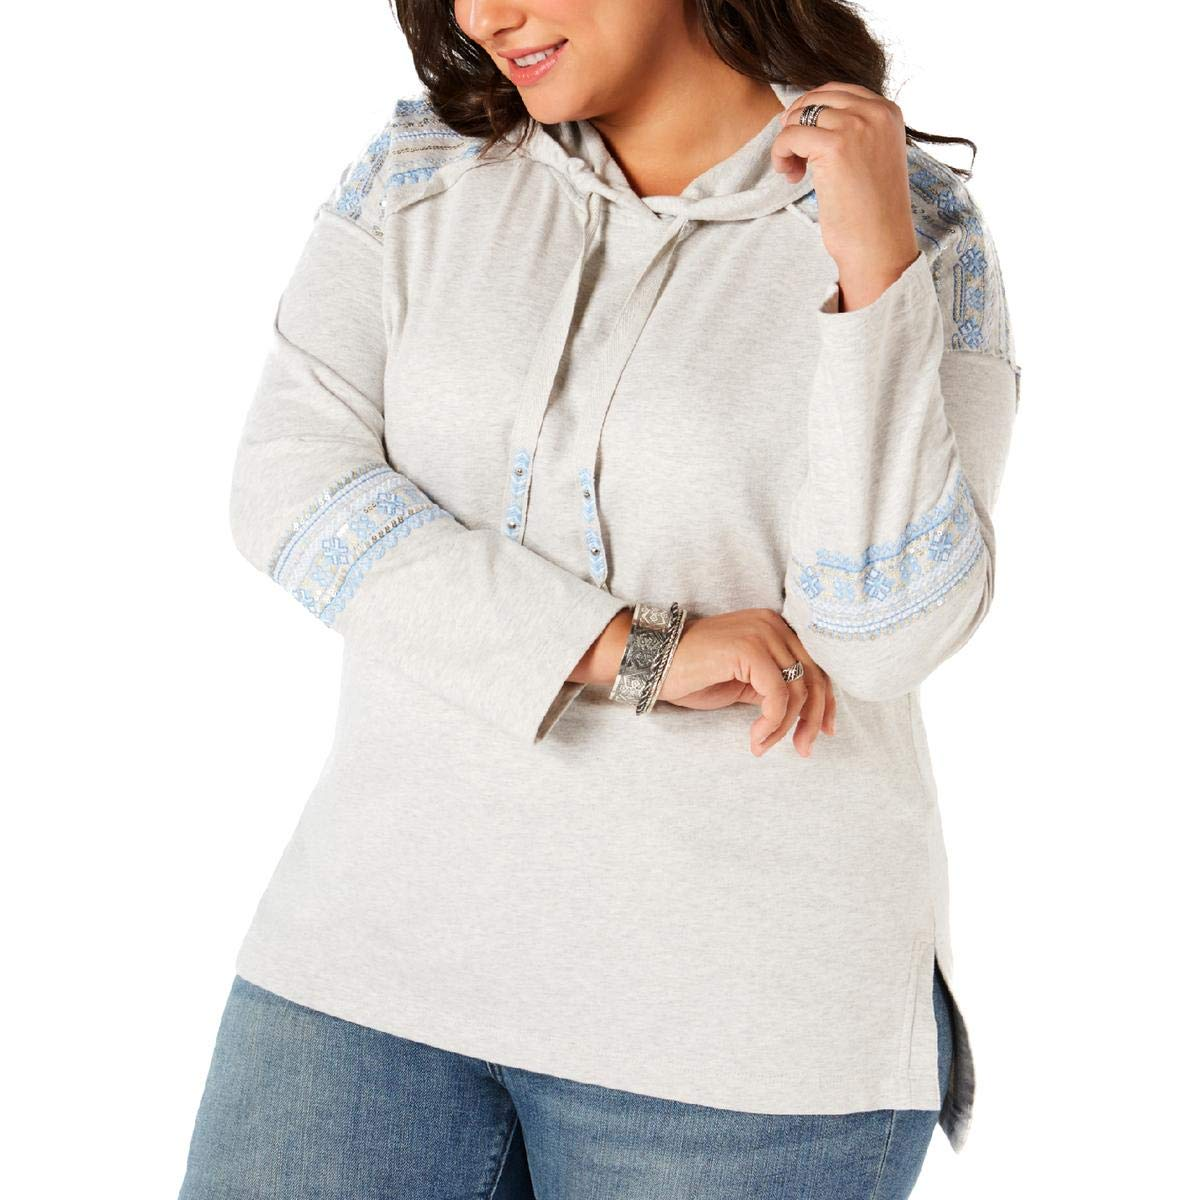 Style & Co. Women's Hoodie Gray 2X Plus Embroidered Sequin D